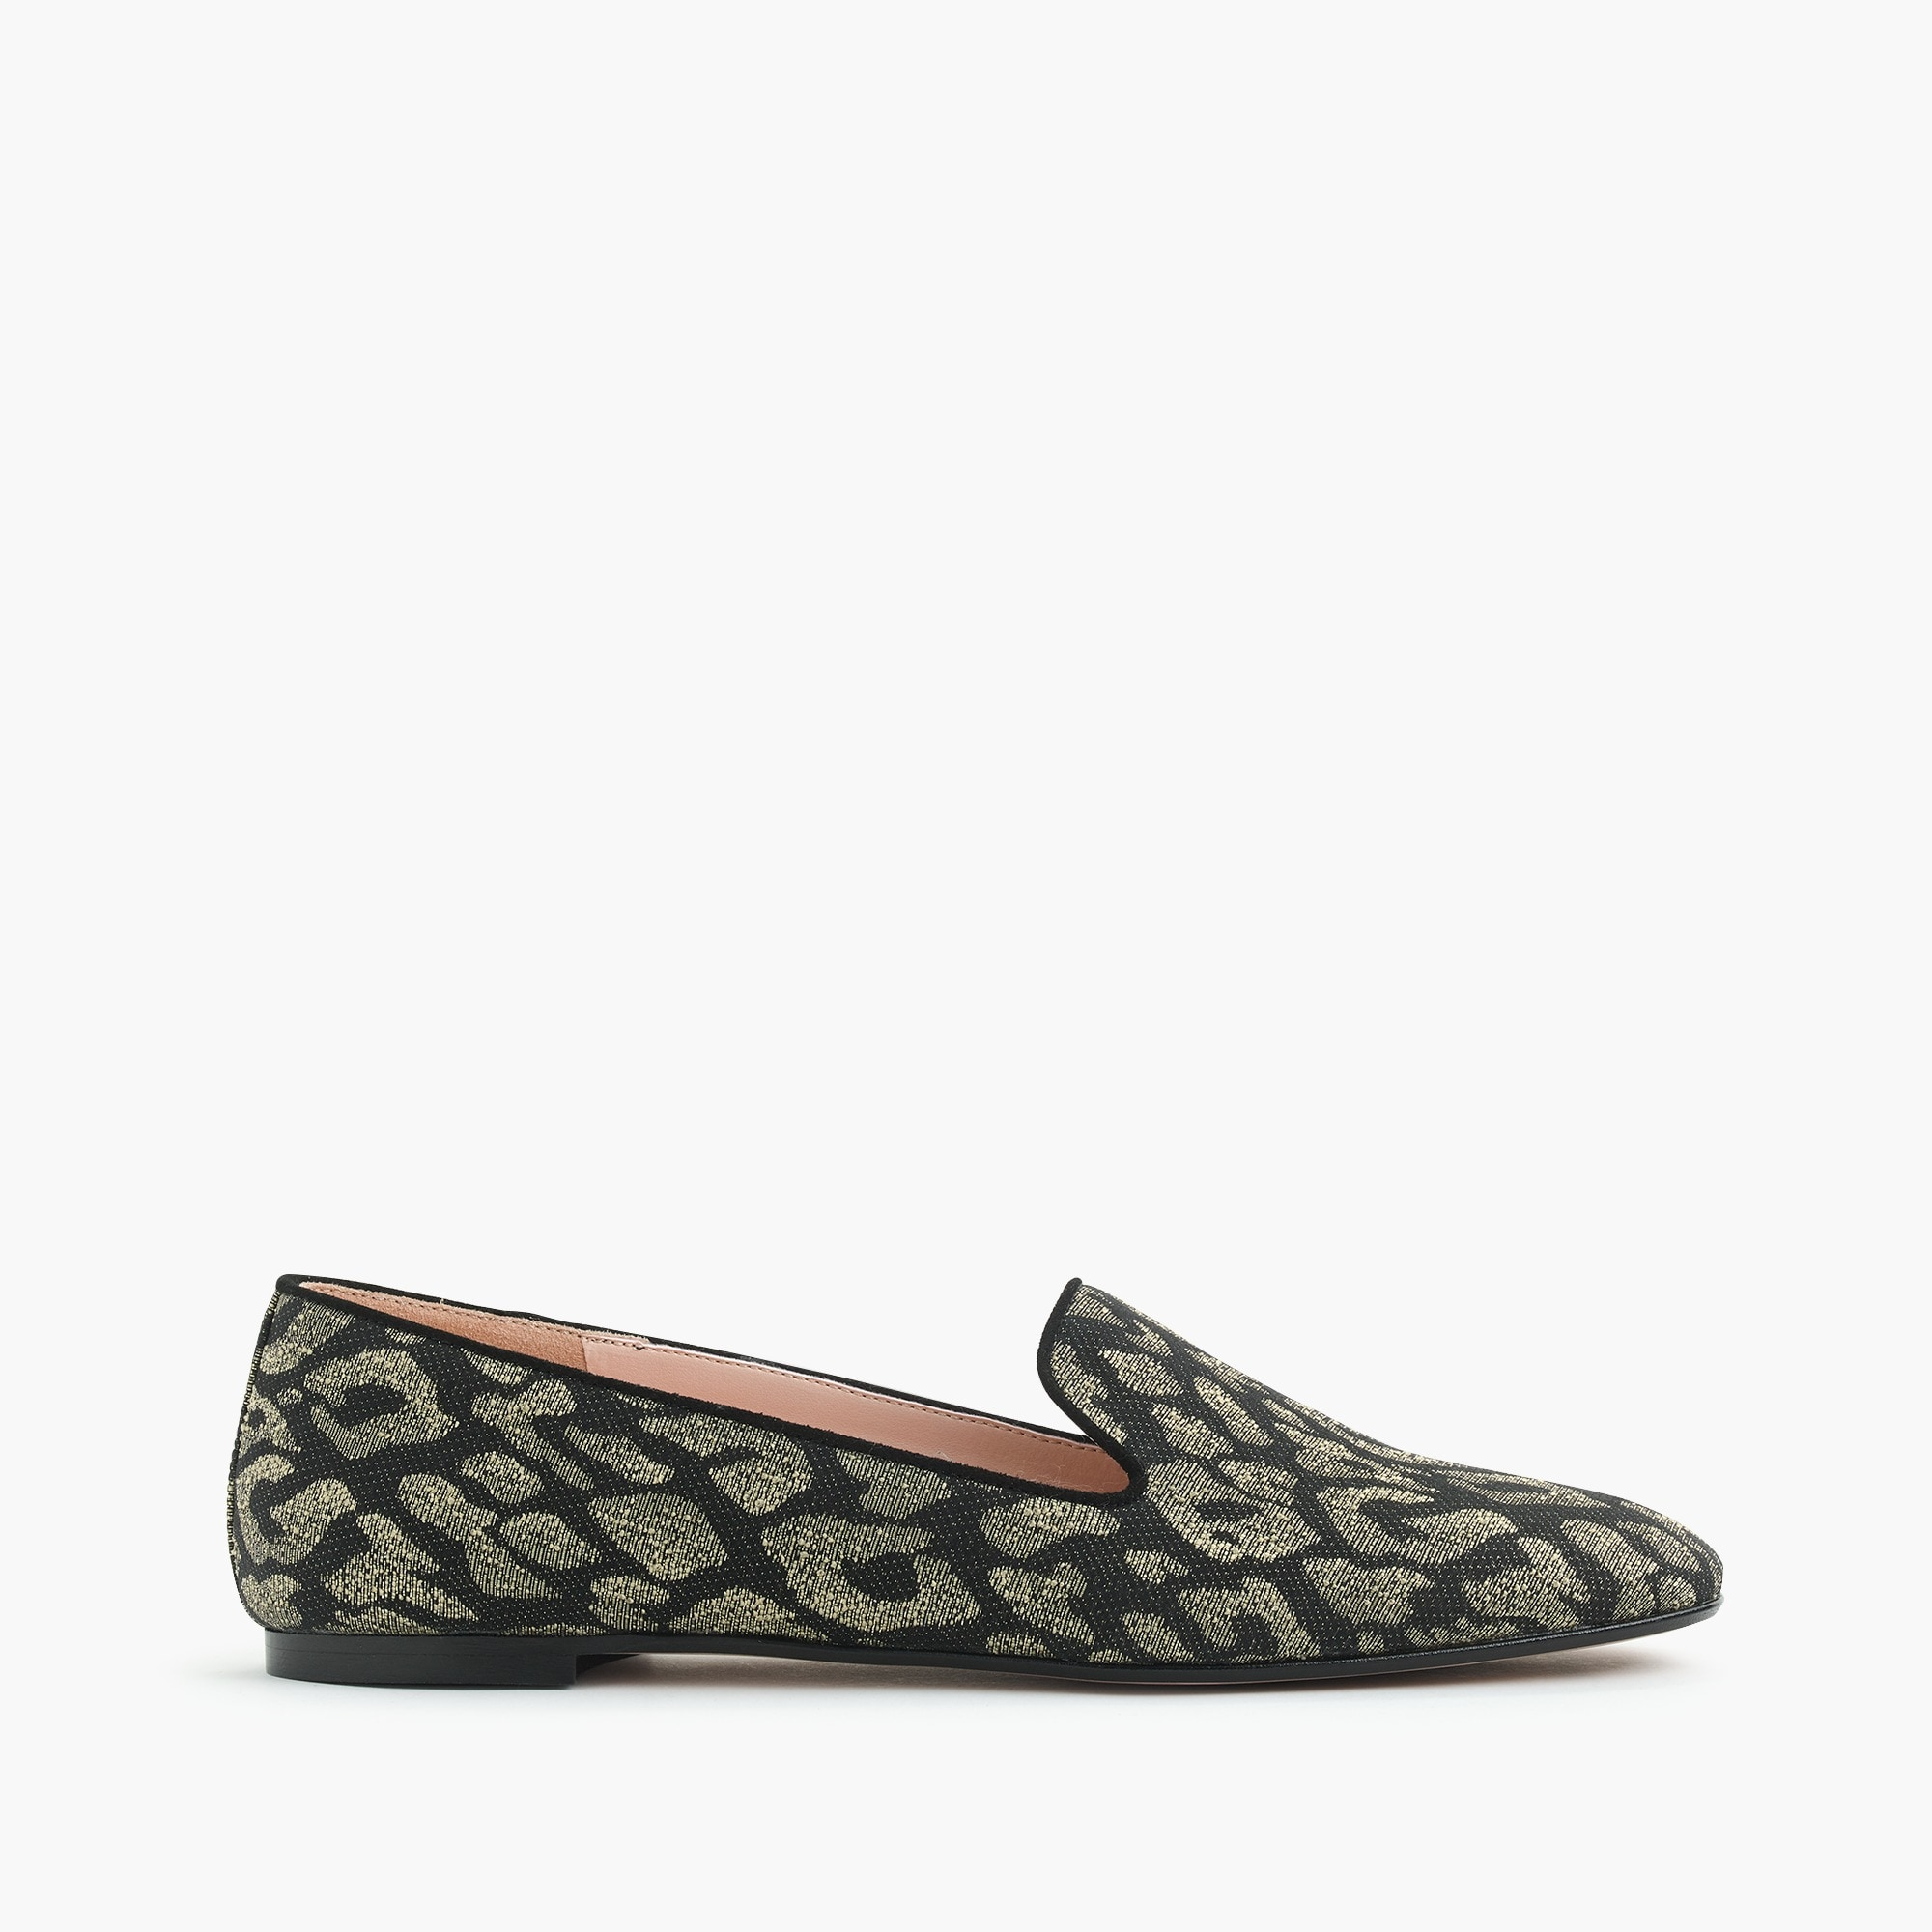 Leopard smoking slippers